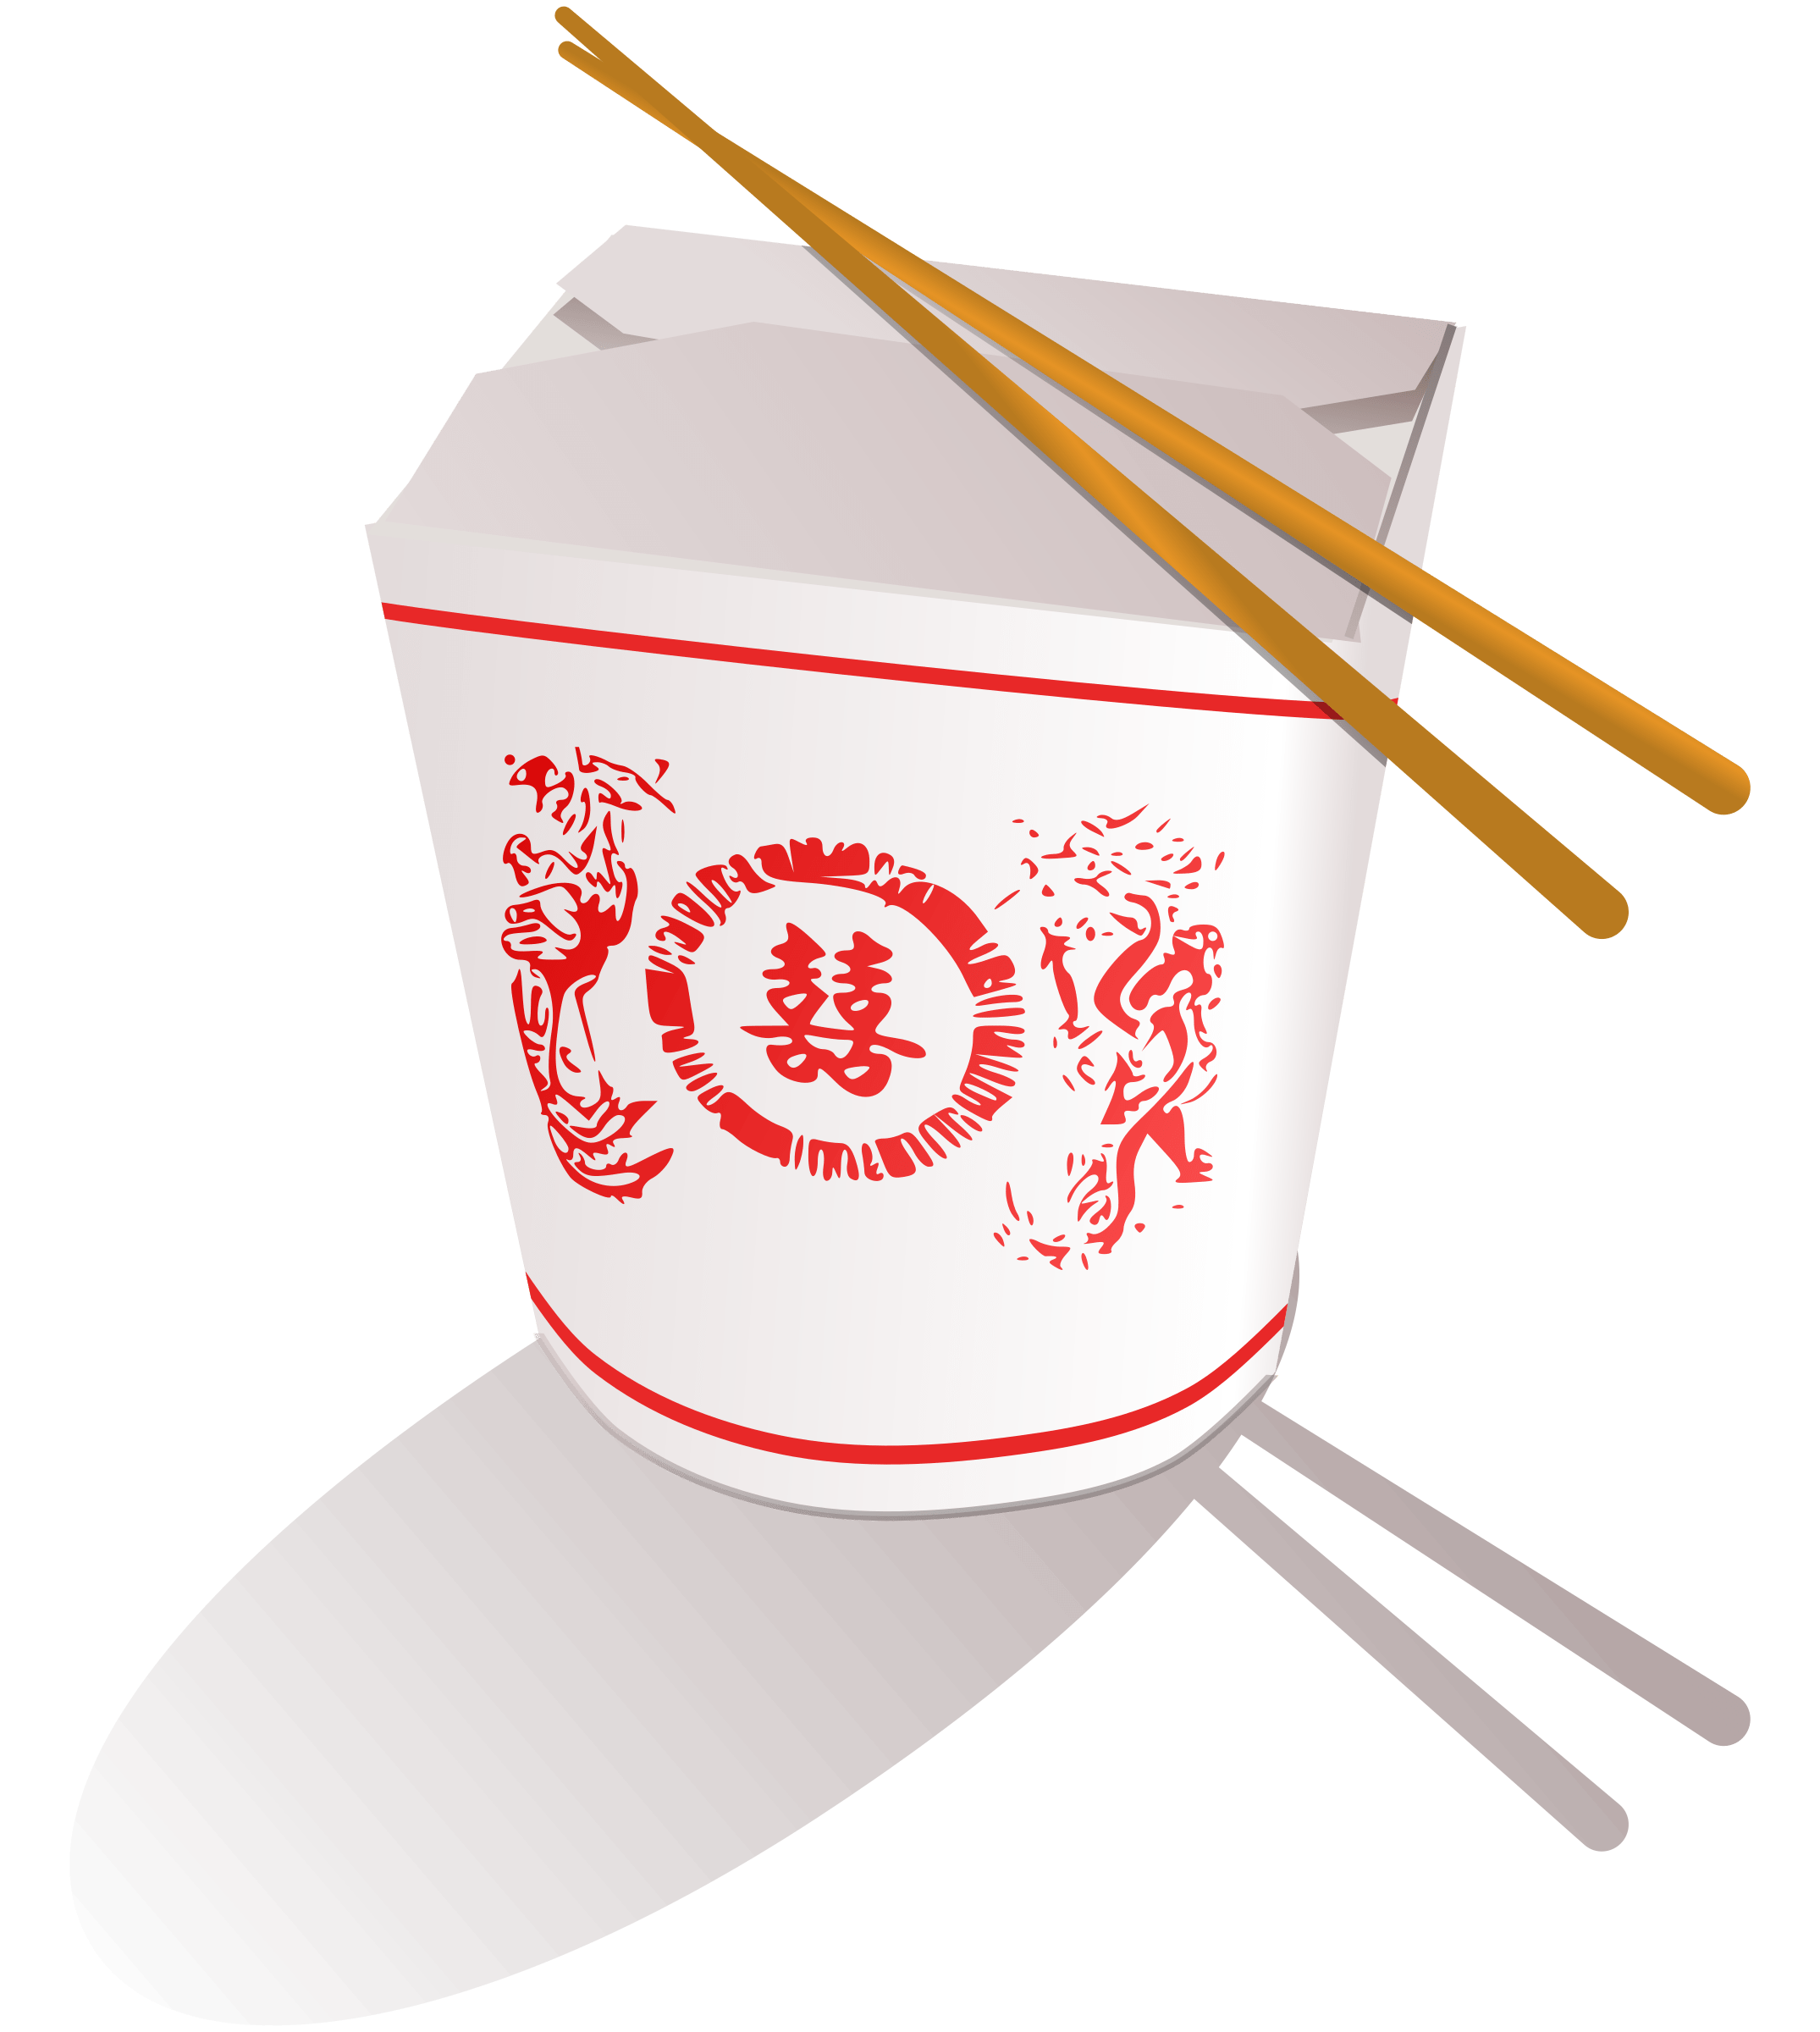 Chinese transparent png stickpng. Noodles clipart food